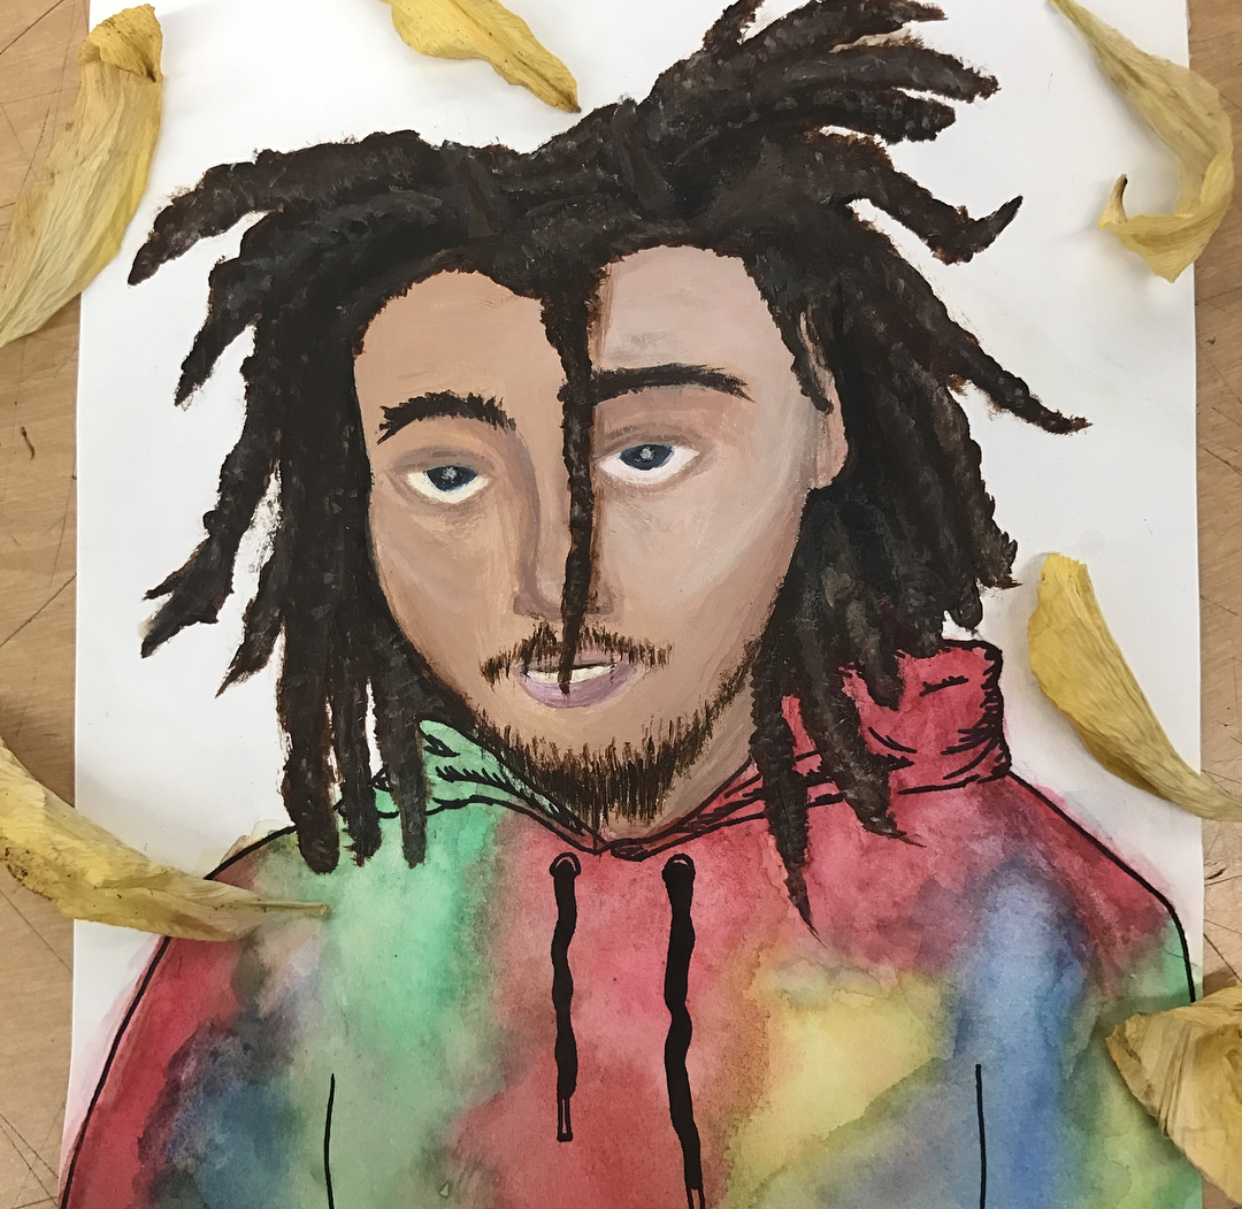 Kweku Collins -Grace - The first time I heard Kweku Collins was at a party. Lonely lullabies caught my attention immediately and I started listening to him. The cool thing about it is that Kweku has a different sound than other artists today. It's a sound that makes me feel good and made me feel overall happy. That mood had been with me the day started painting the picture. And I just did whatever I wanted from there. I was very drawn in by his tie dye sweatshirt in that picture which I went off of. Kweku is definitely an inspiration to me in general.IG: @grace_musto.art